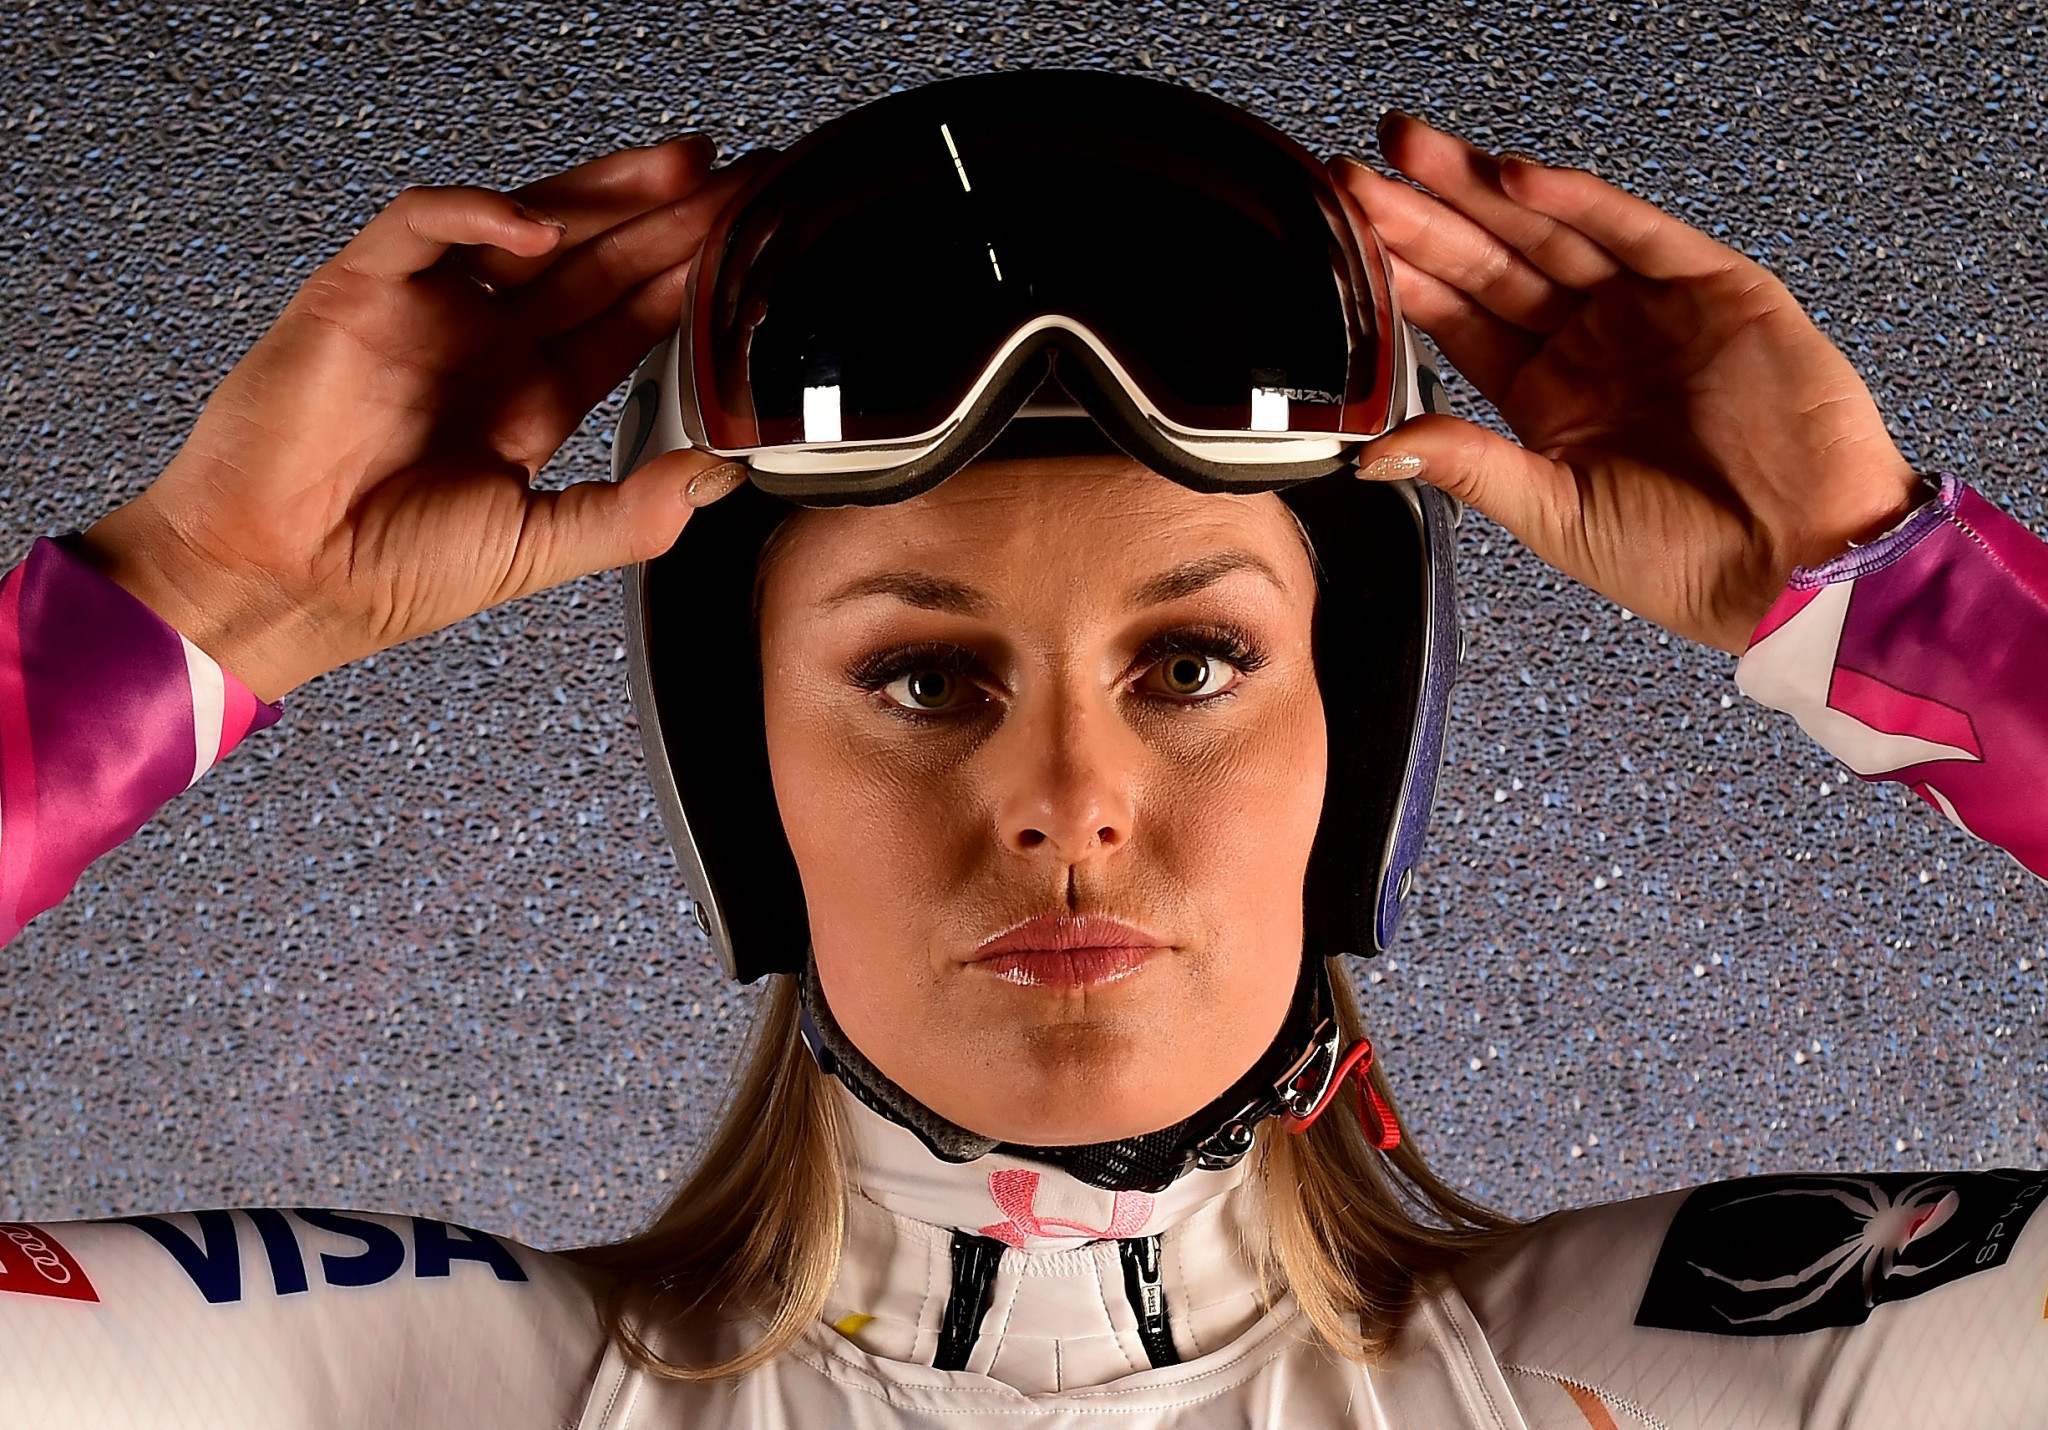 United States Ski and Snowboard to propose allowing Vonn to compete against men at FIS World Cup in Lake Louise